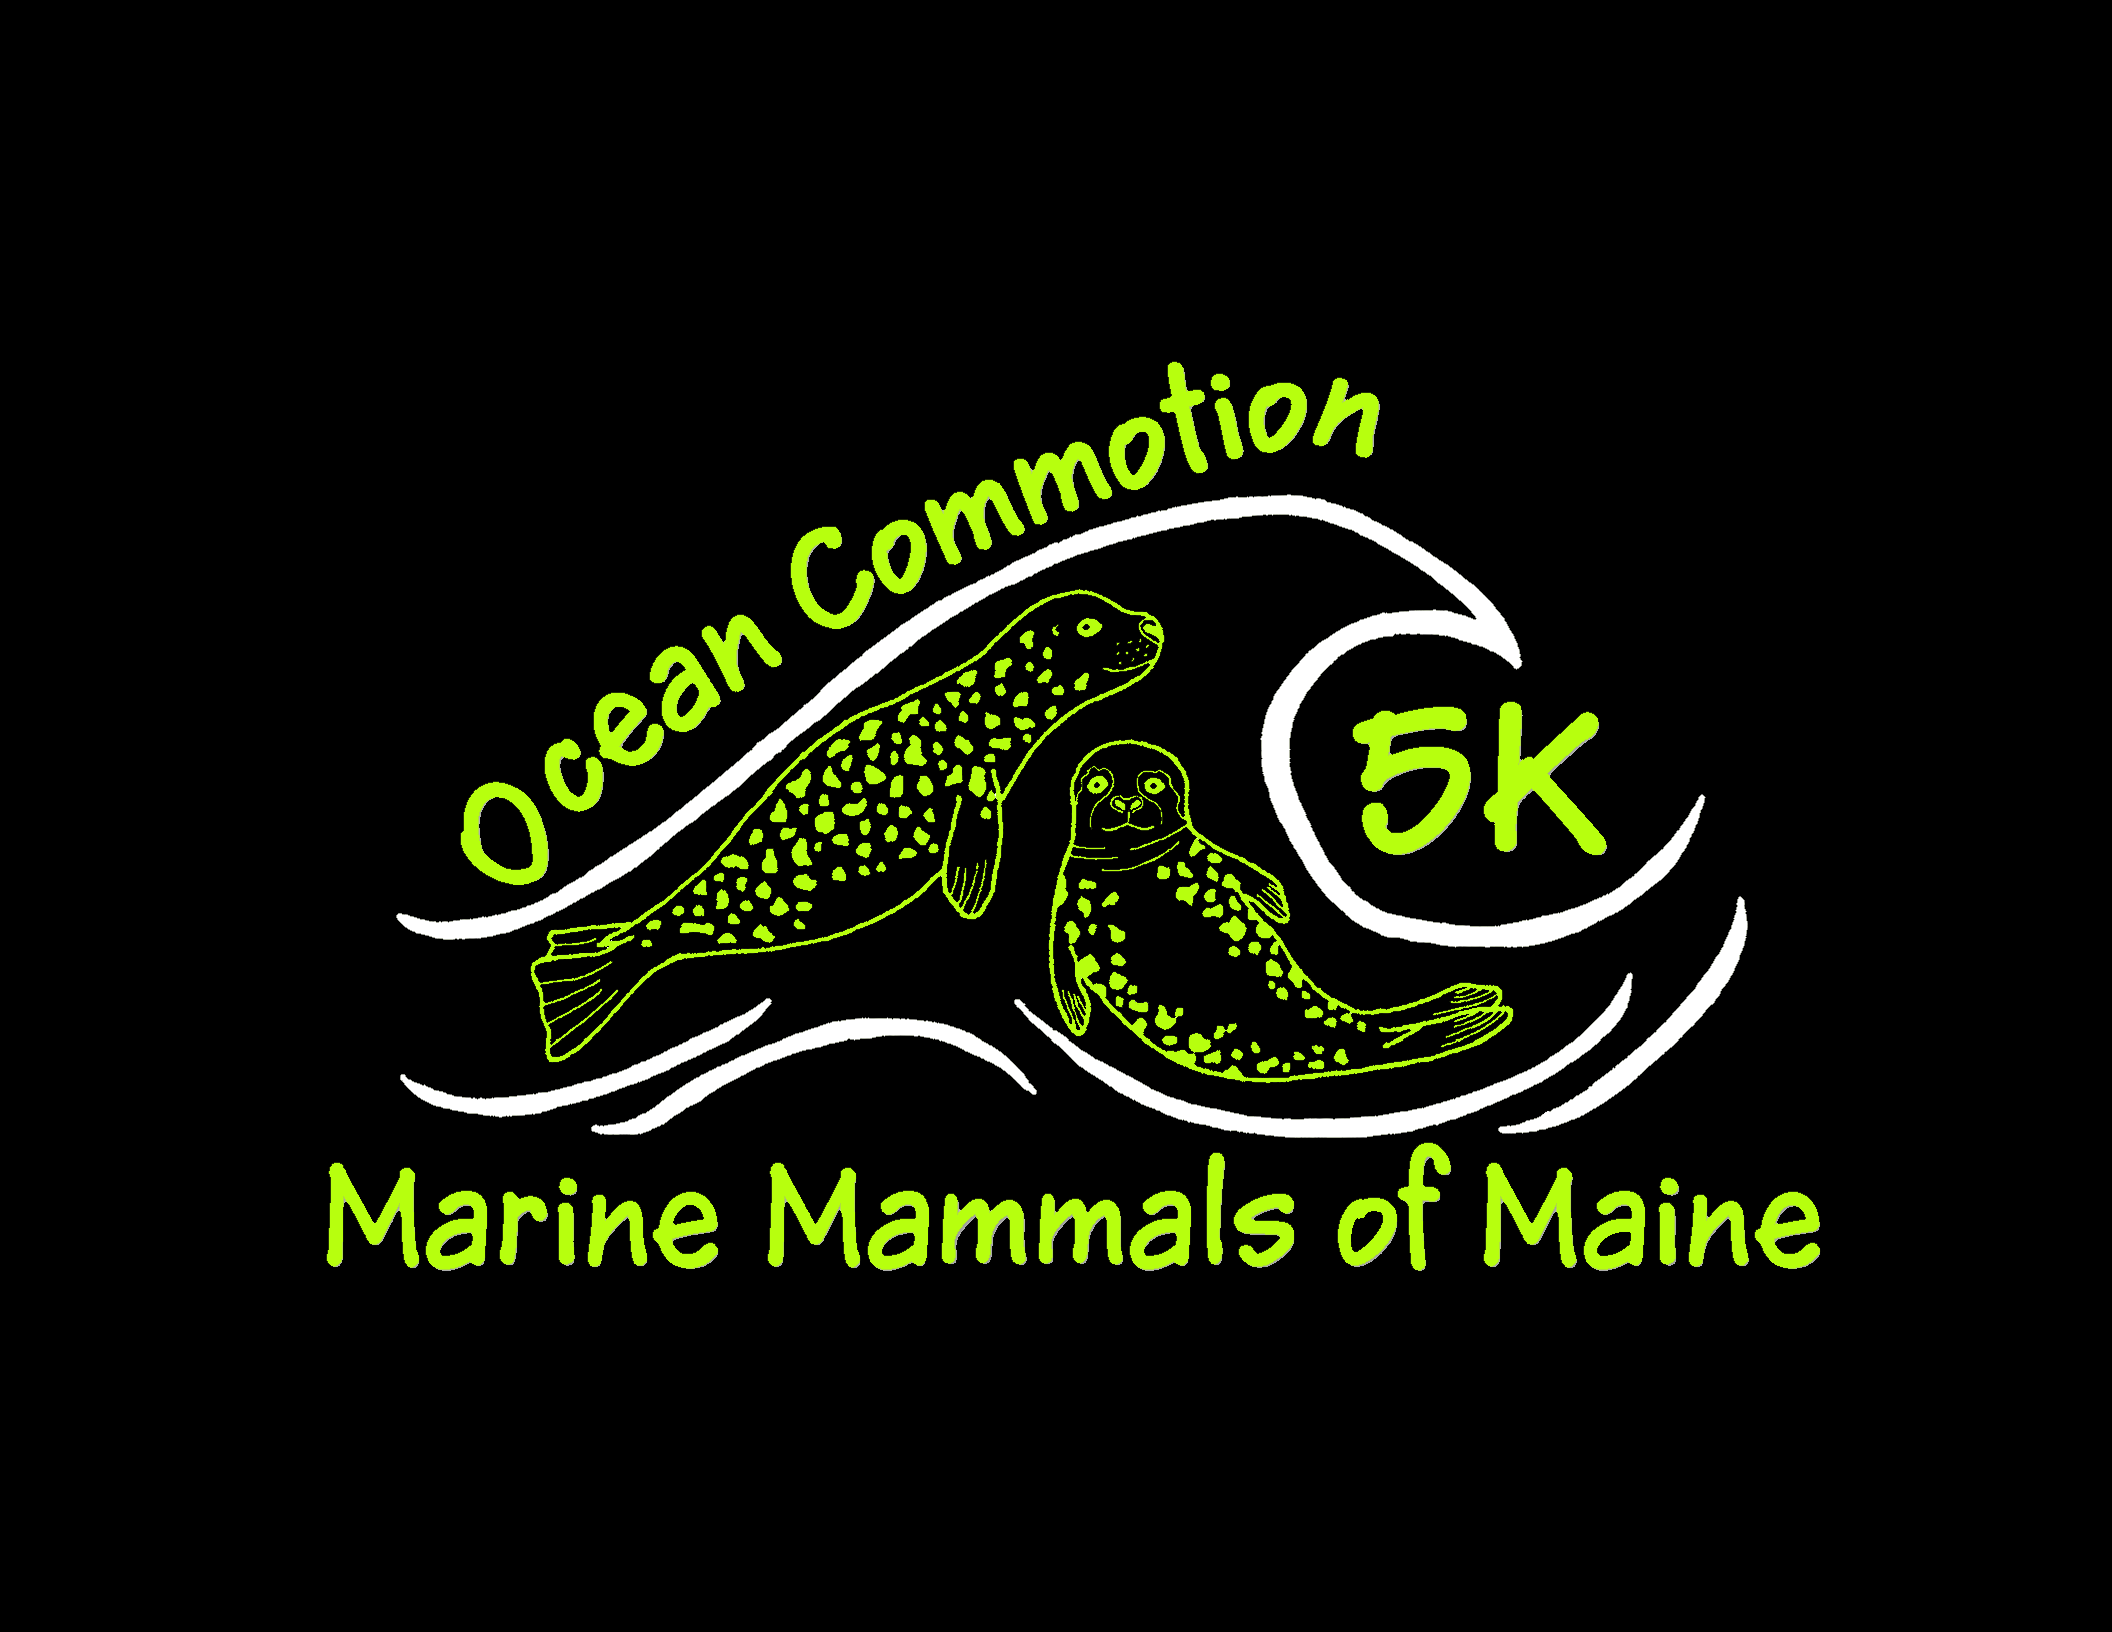 Ocean Commotion 5K Run/Walk - MMoME